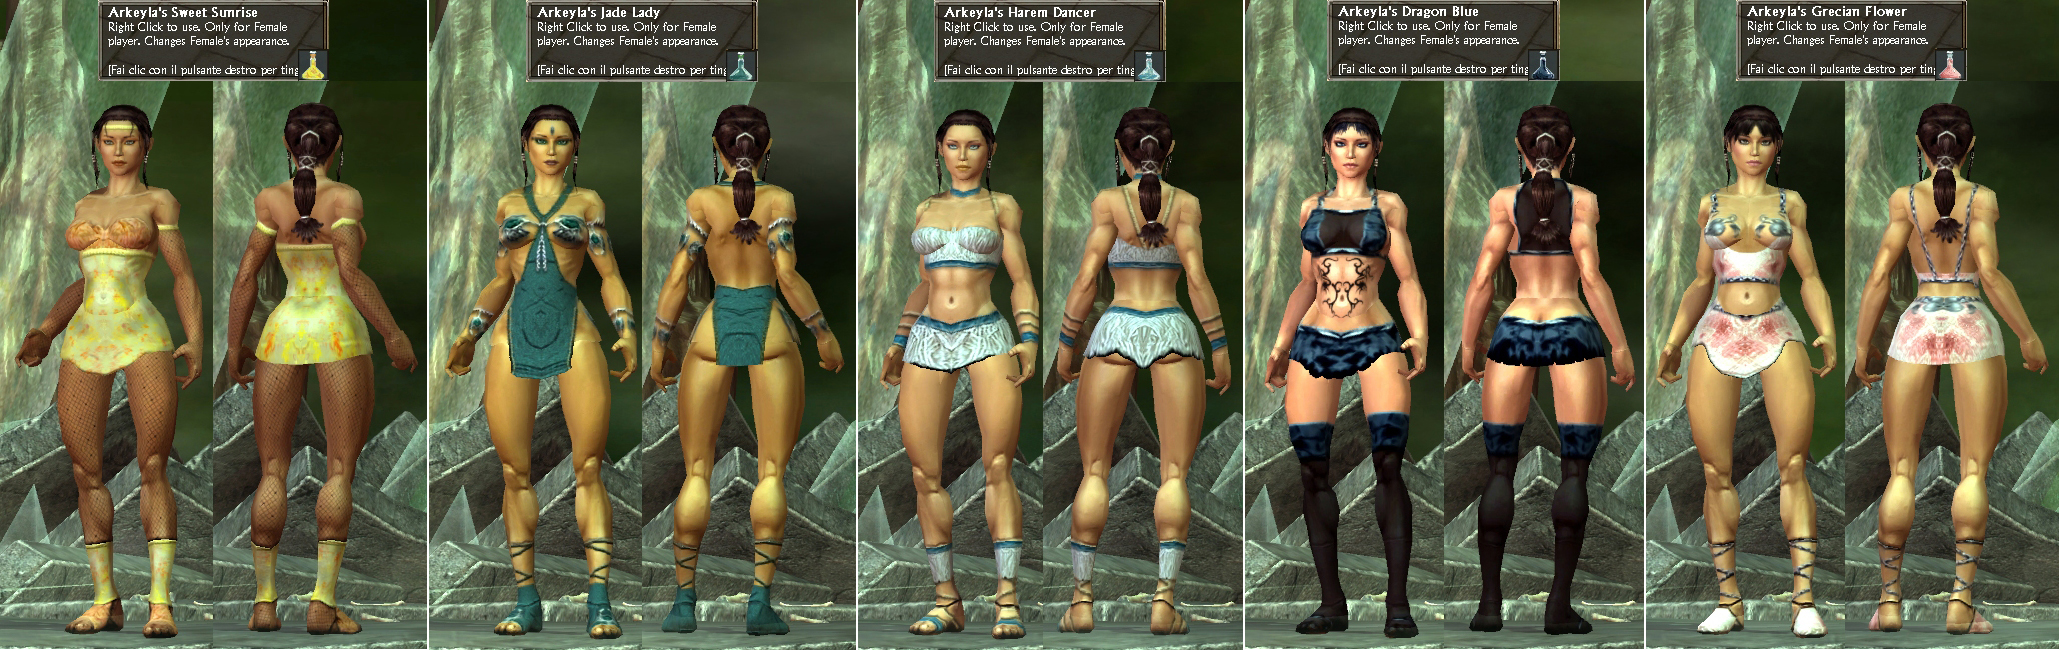 Nude mod titan quest pornos movies